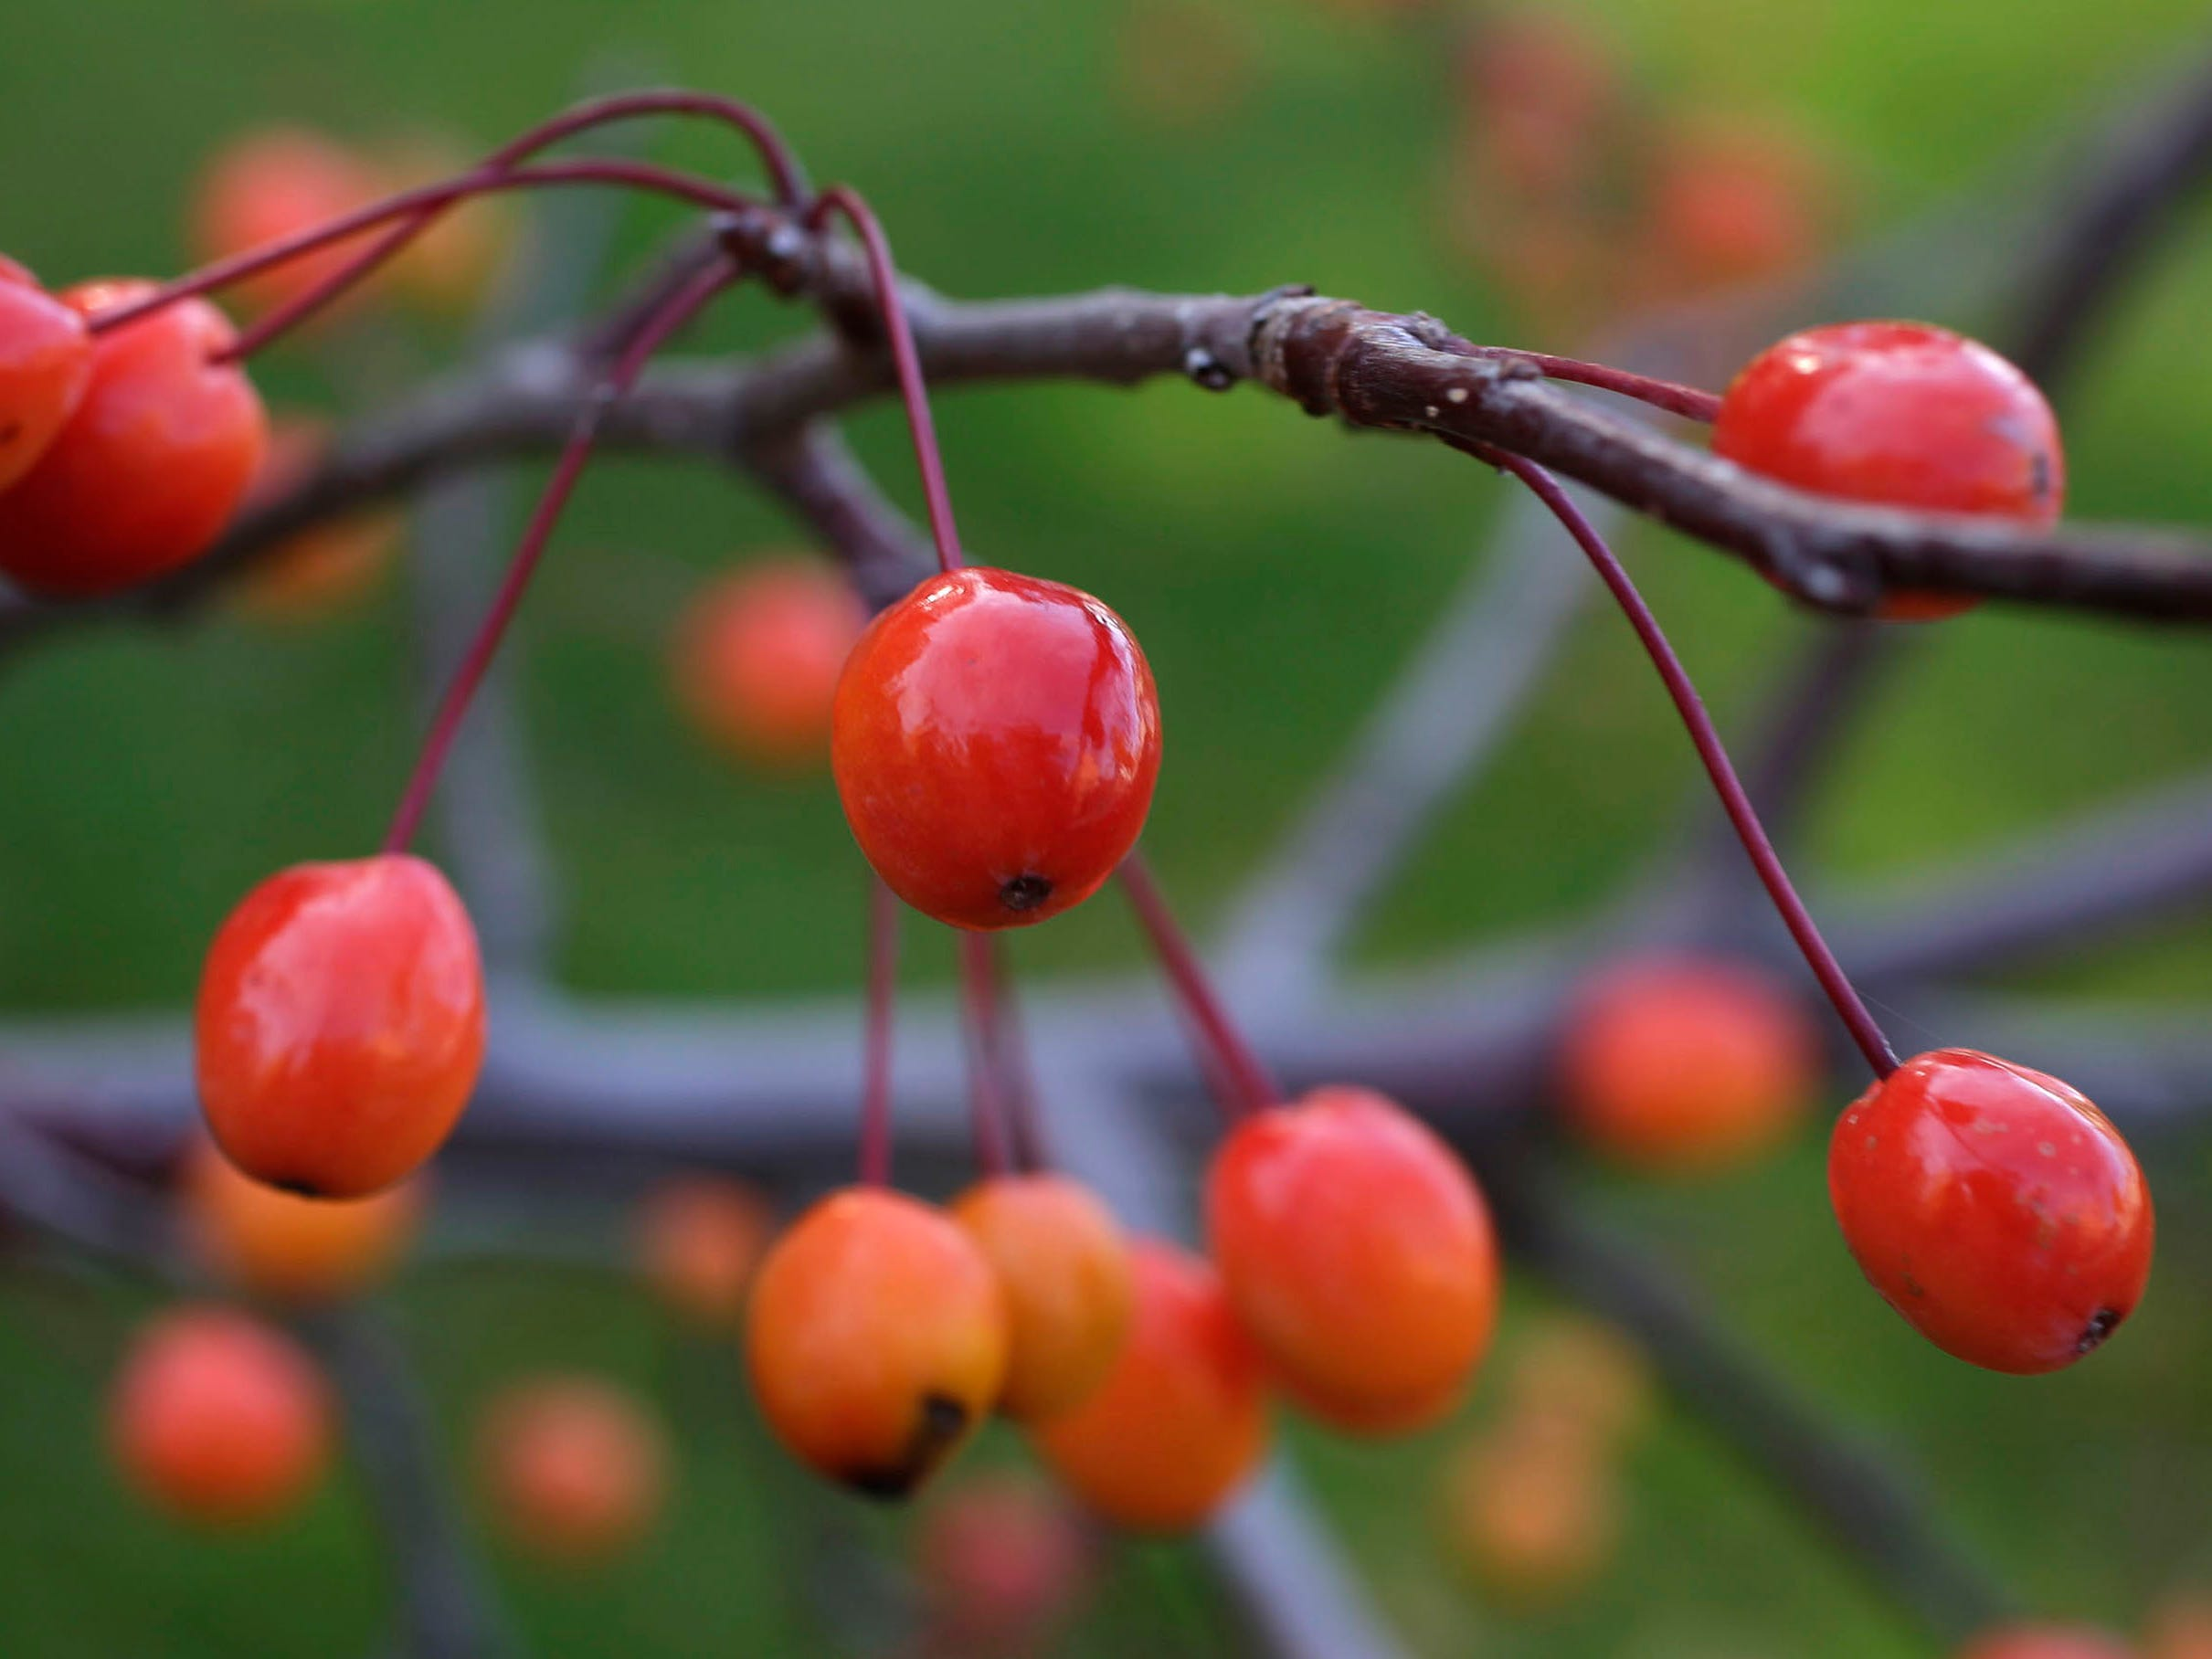 Tiny crab apples are the only things left on a branch of a flowering crab tree, Wednesday, October 31, 2018, in Sheboygan, Wis.